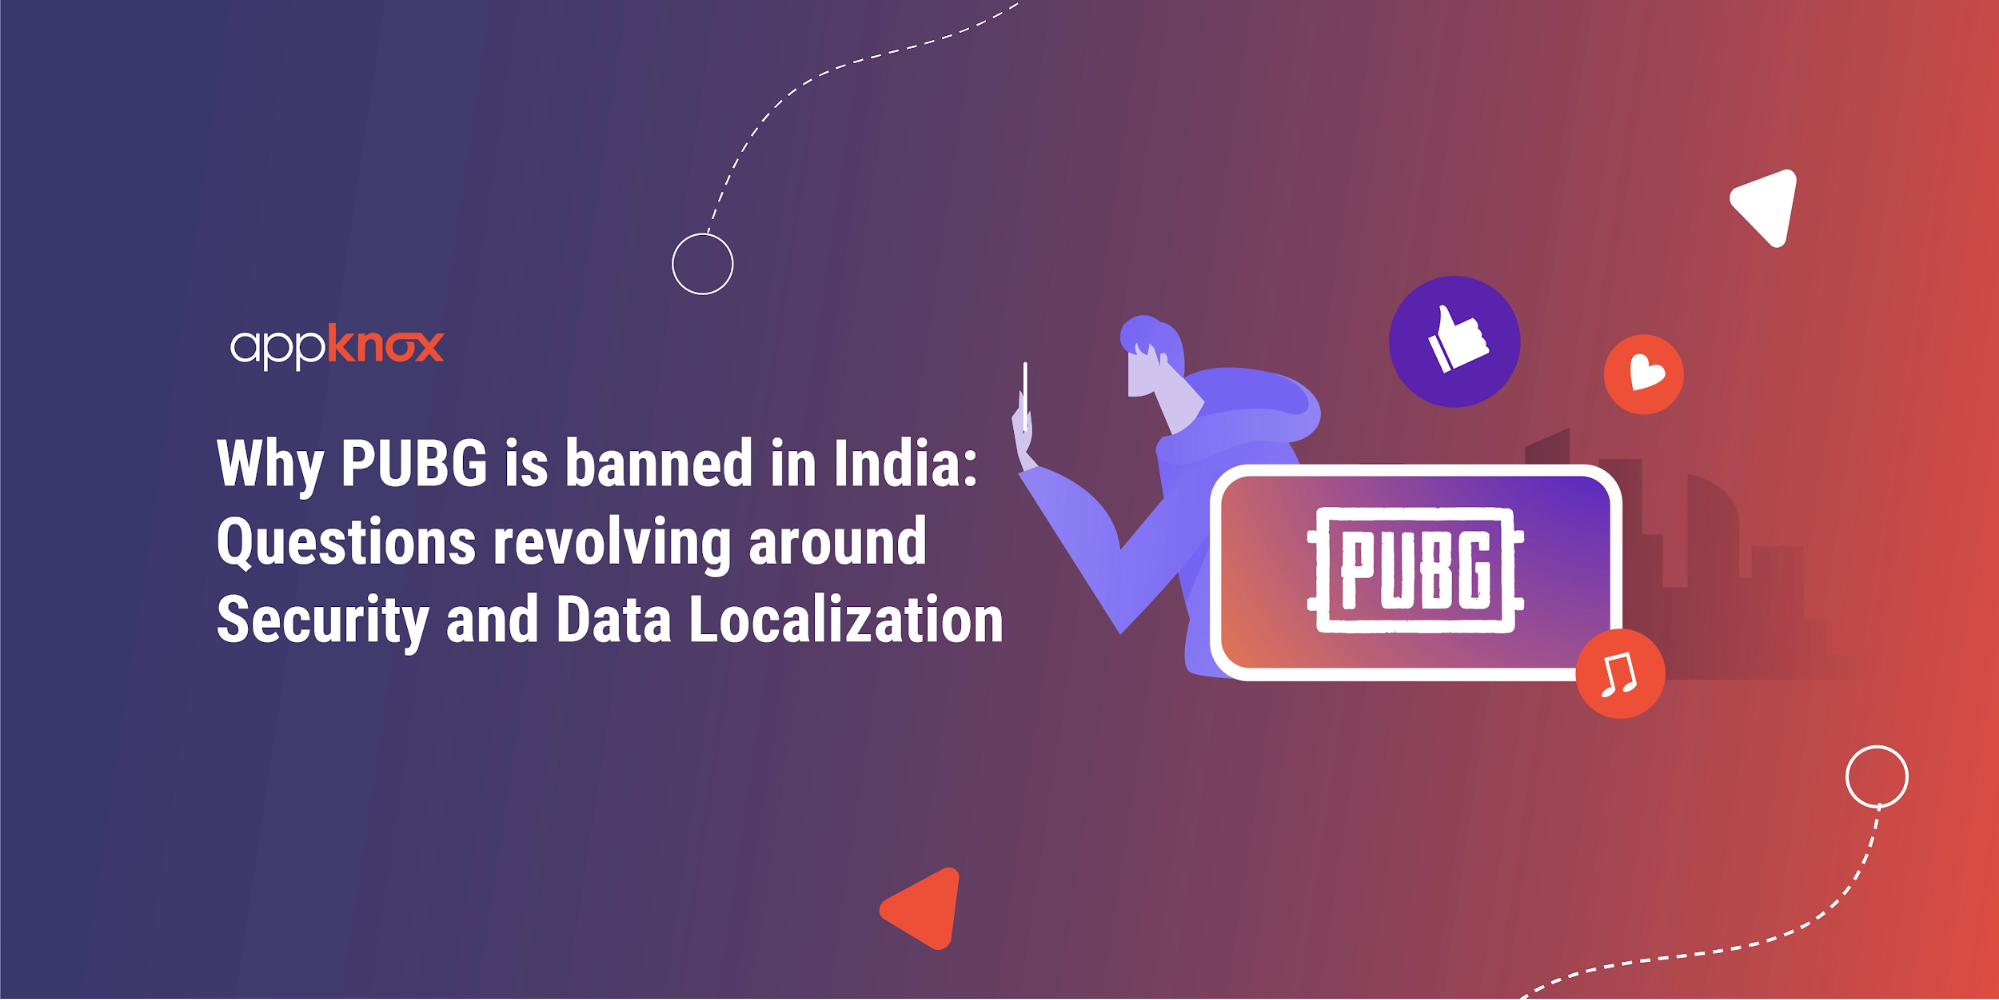 Why is PUBG Banned in India? Questions Revolving Around Security and Data Localization